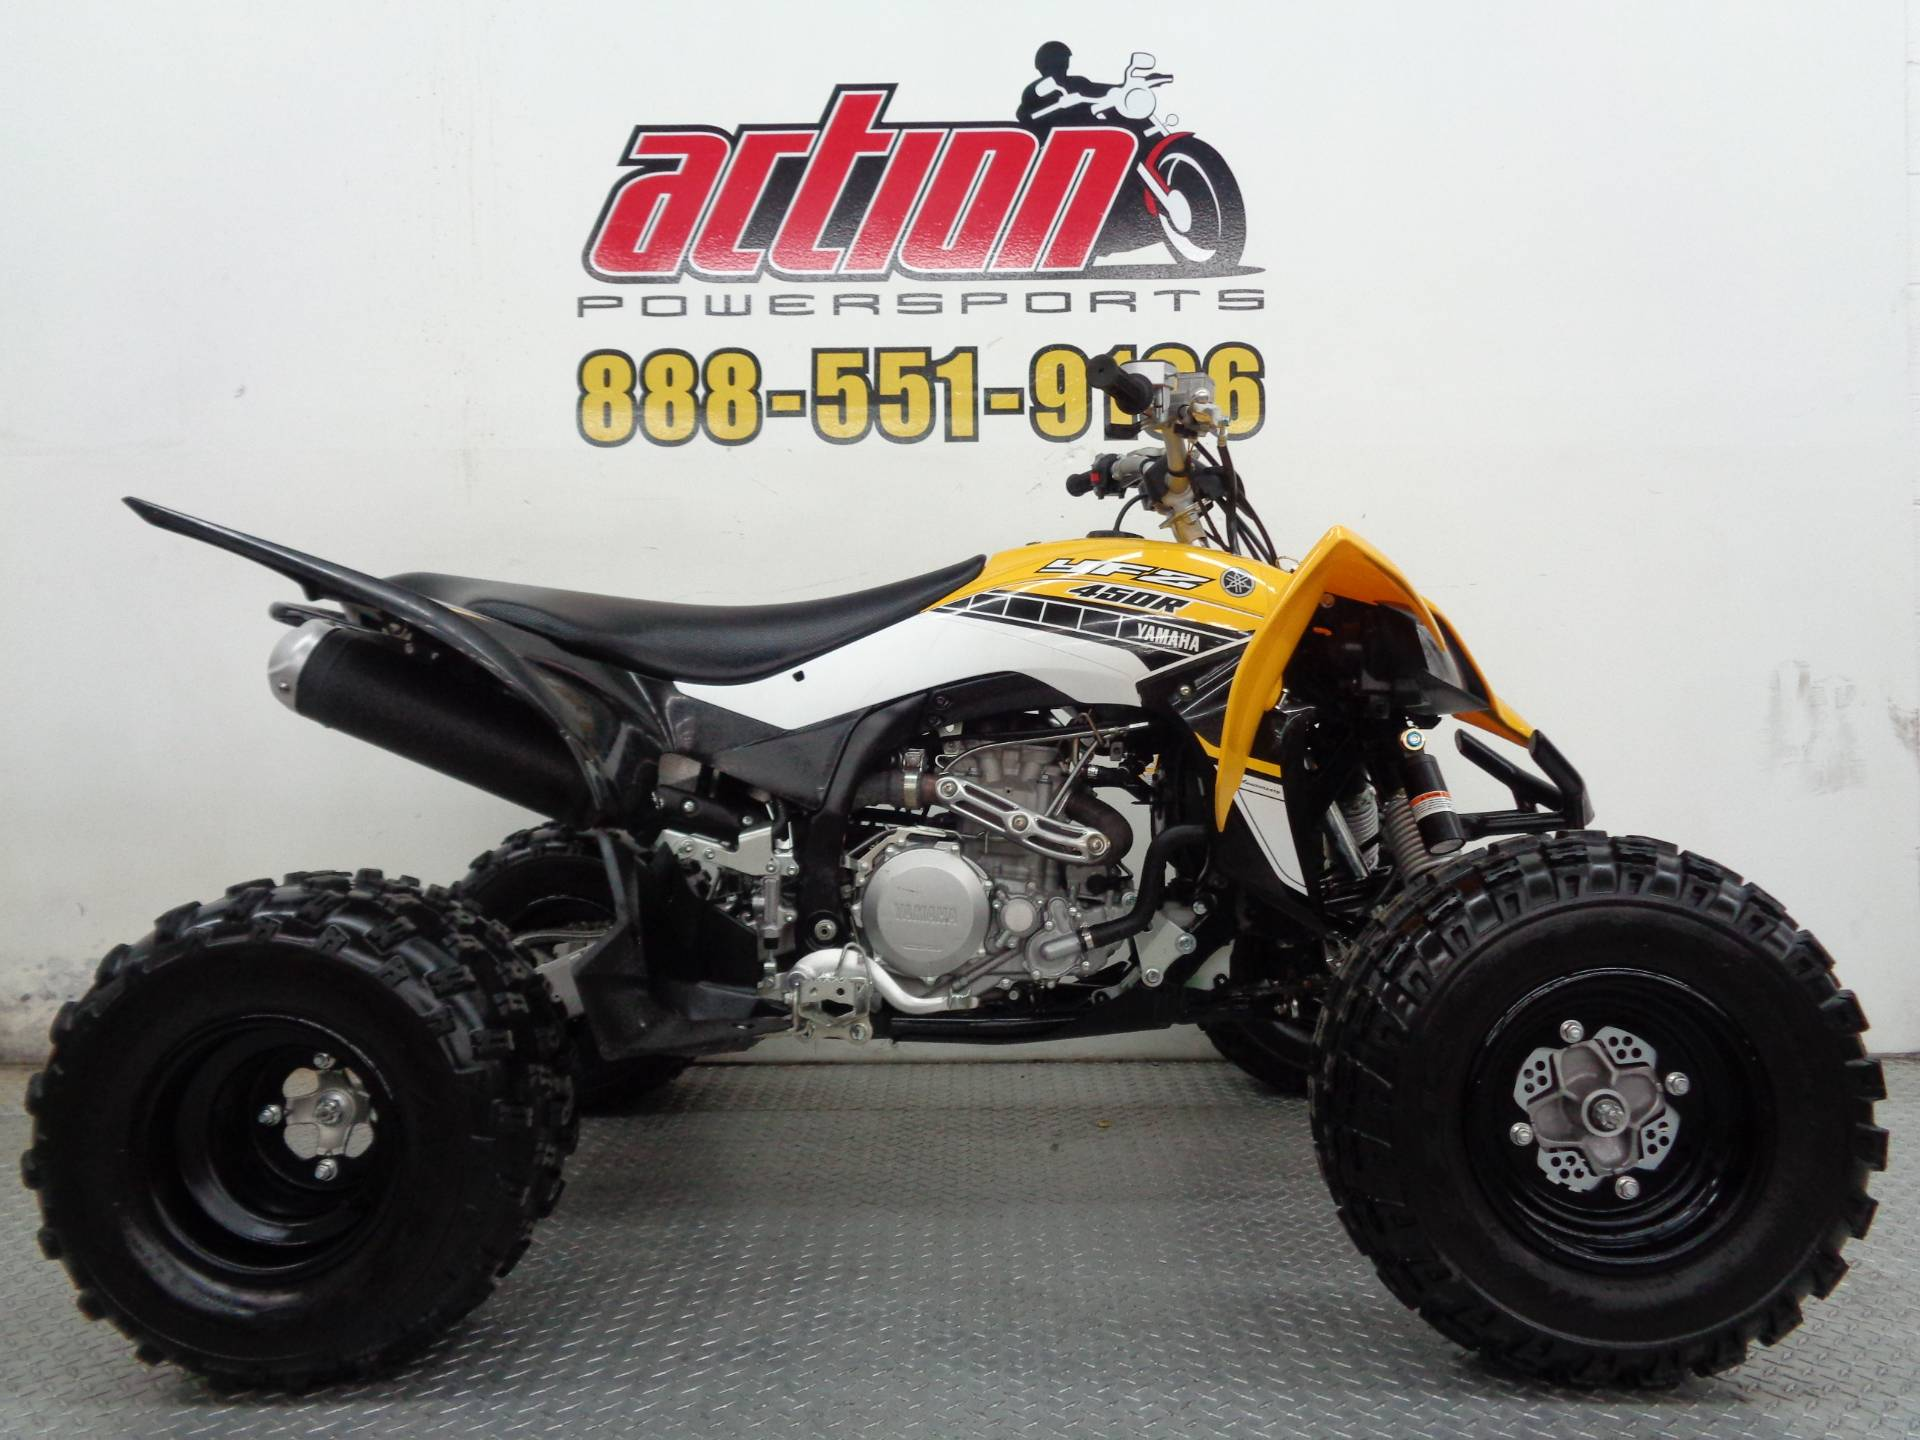 2016 Yamaha YFZ450R SE for sale 18522